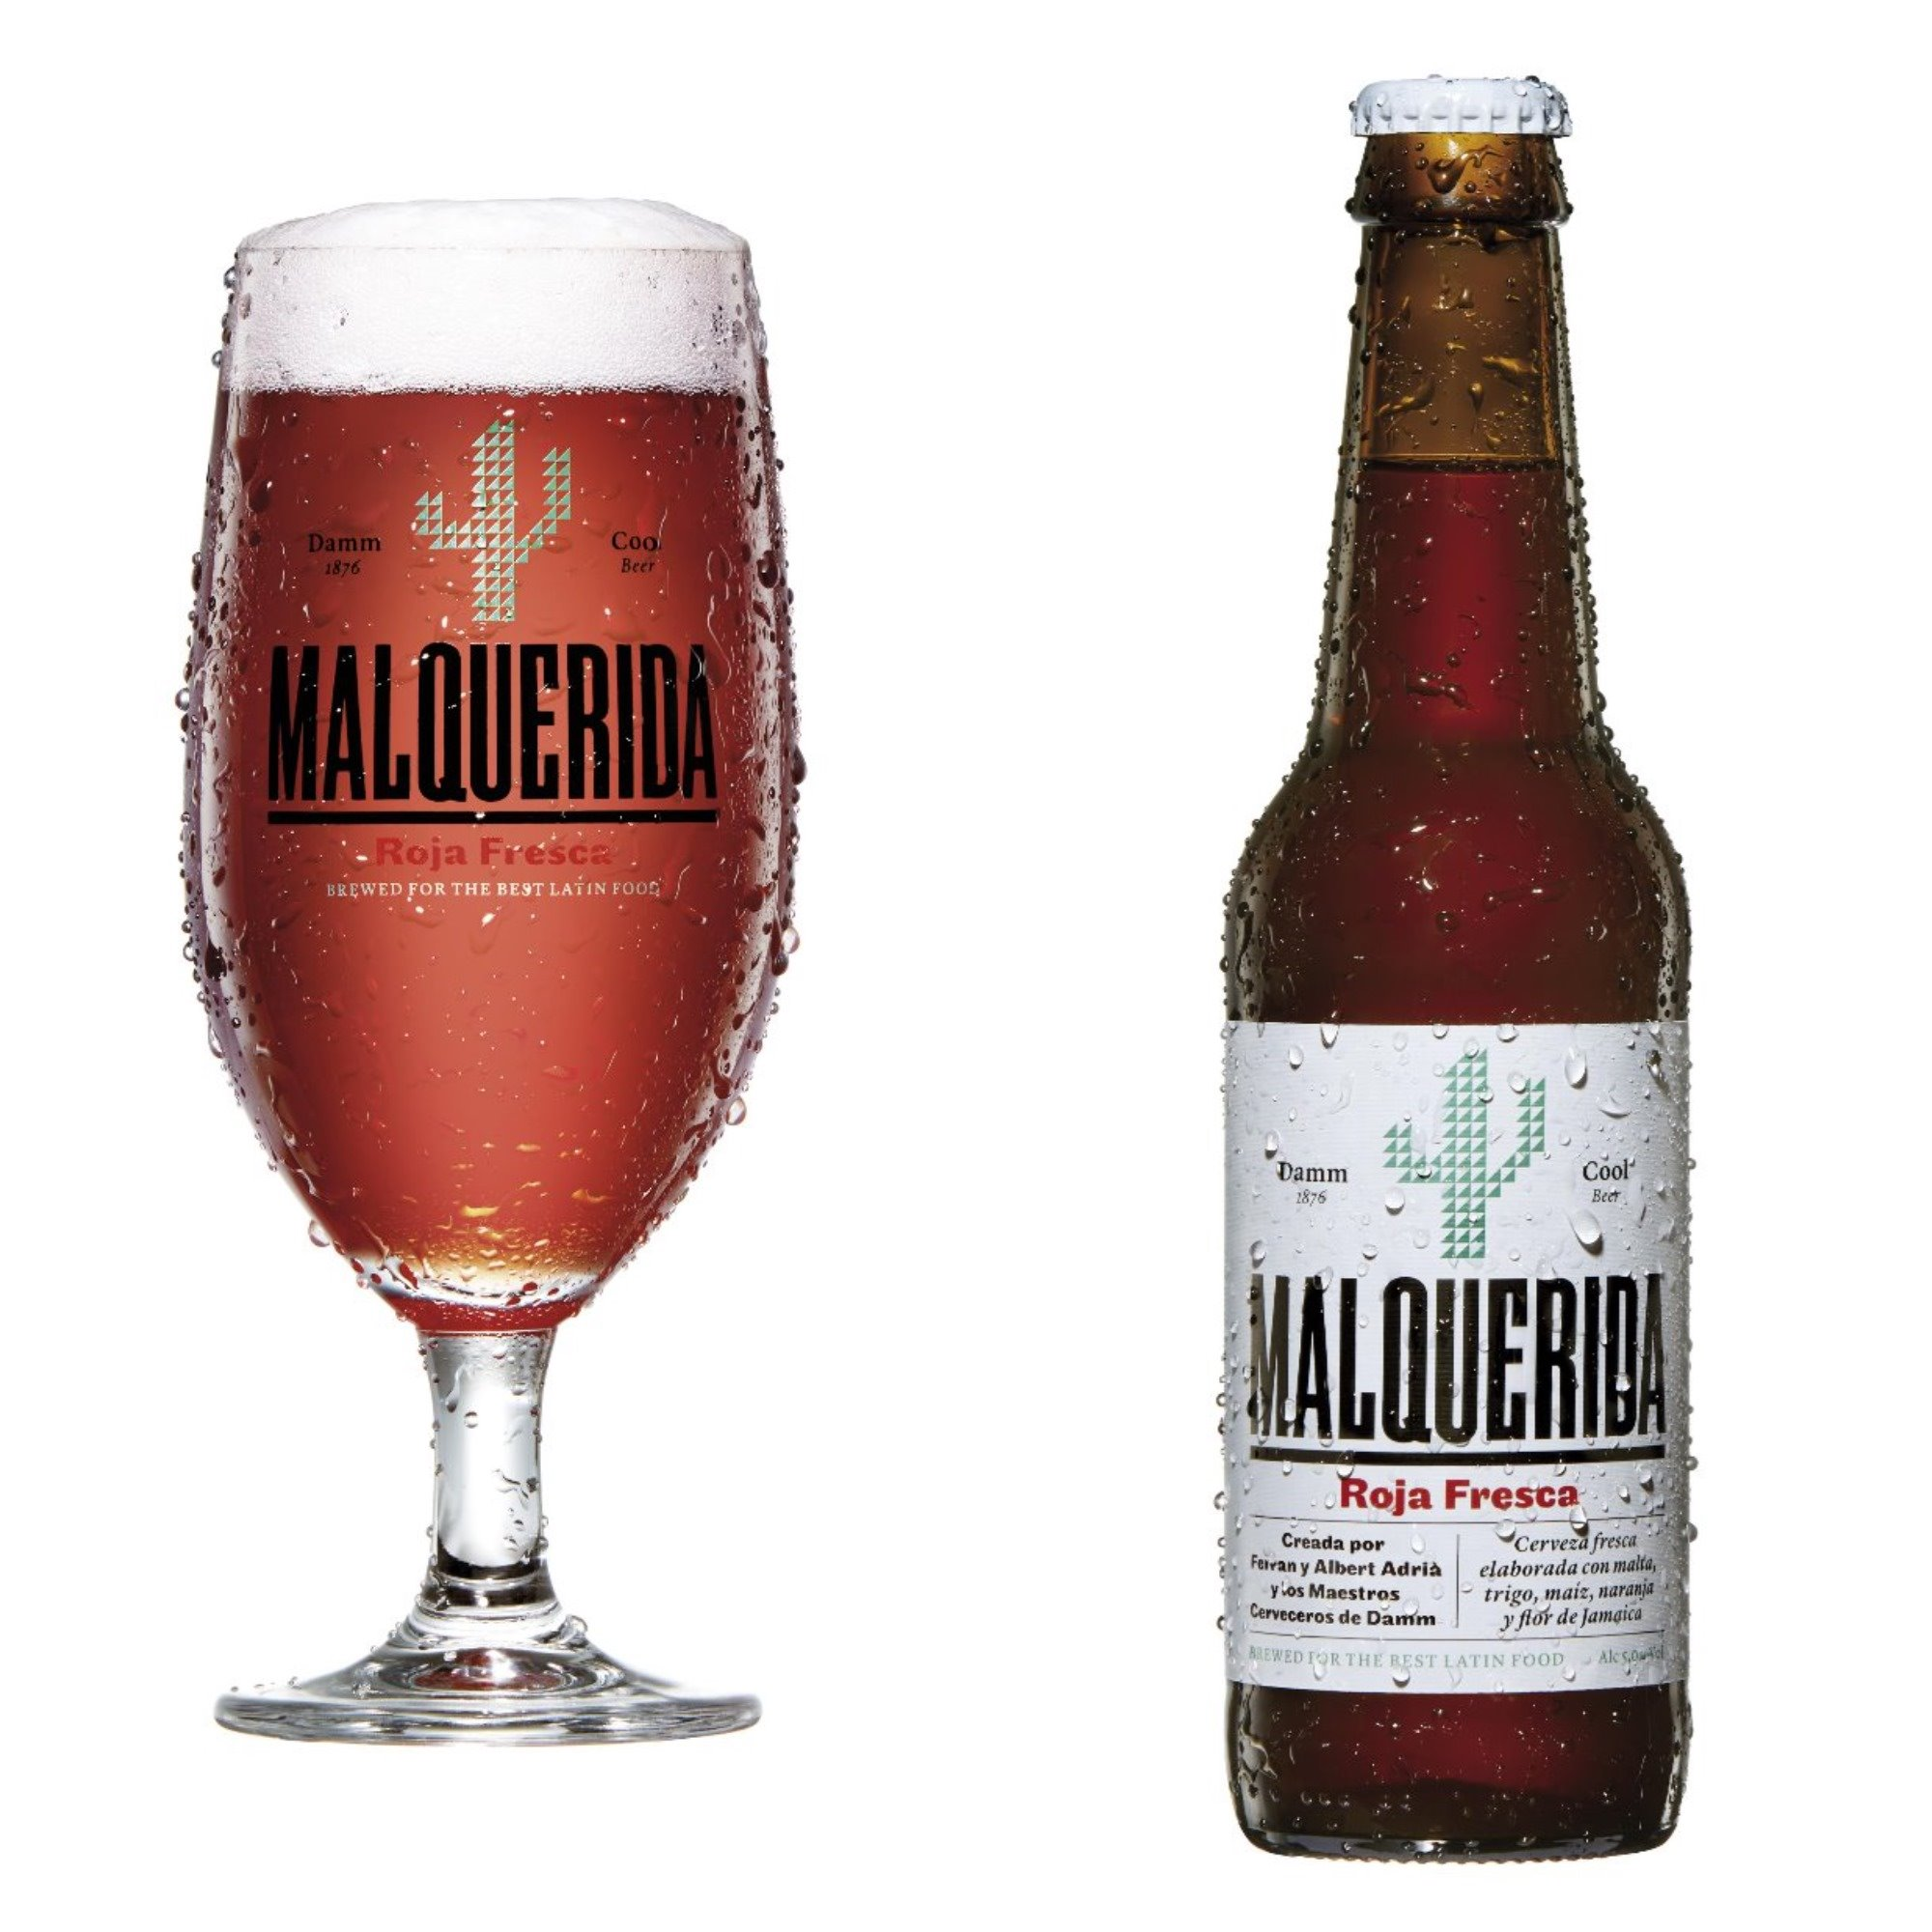 Malquerida beer, produced by Damm, with a little help from the world's greatest culinary genuises